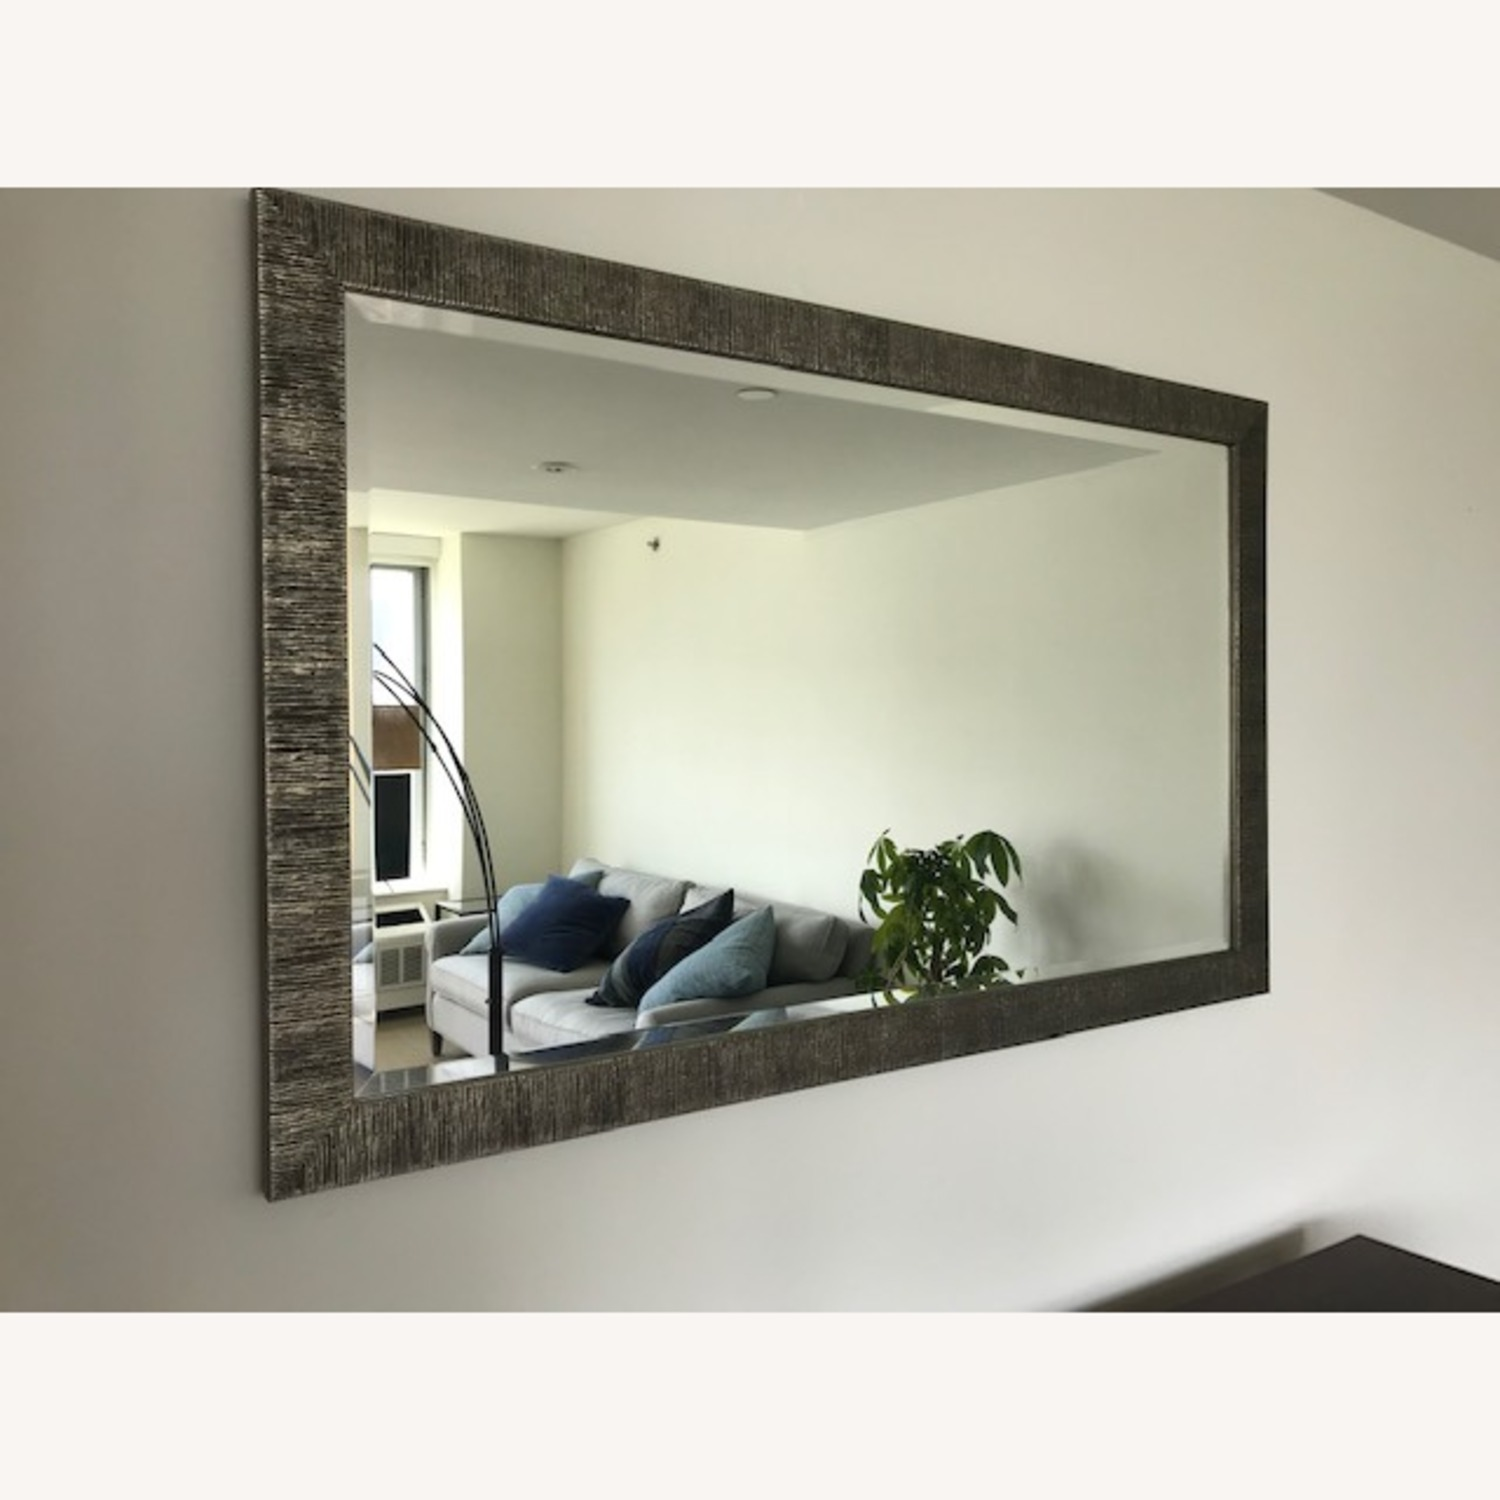 Crate & Barrel Siver Birch Wall Mirror - image-1